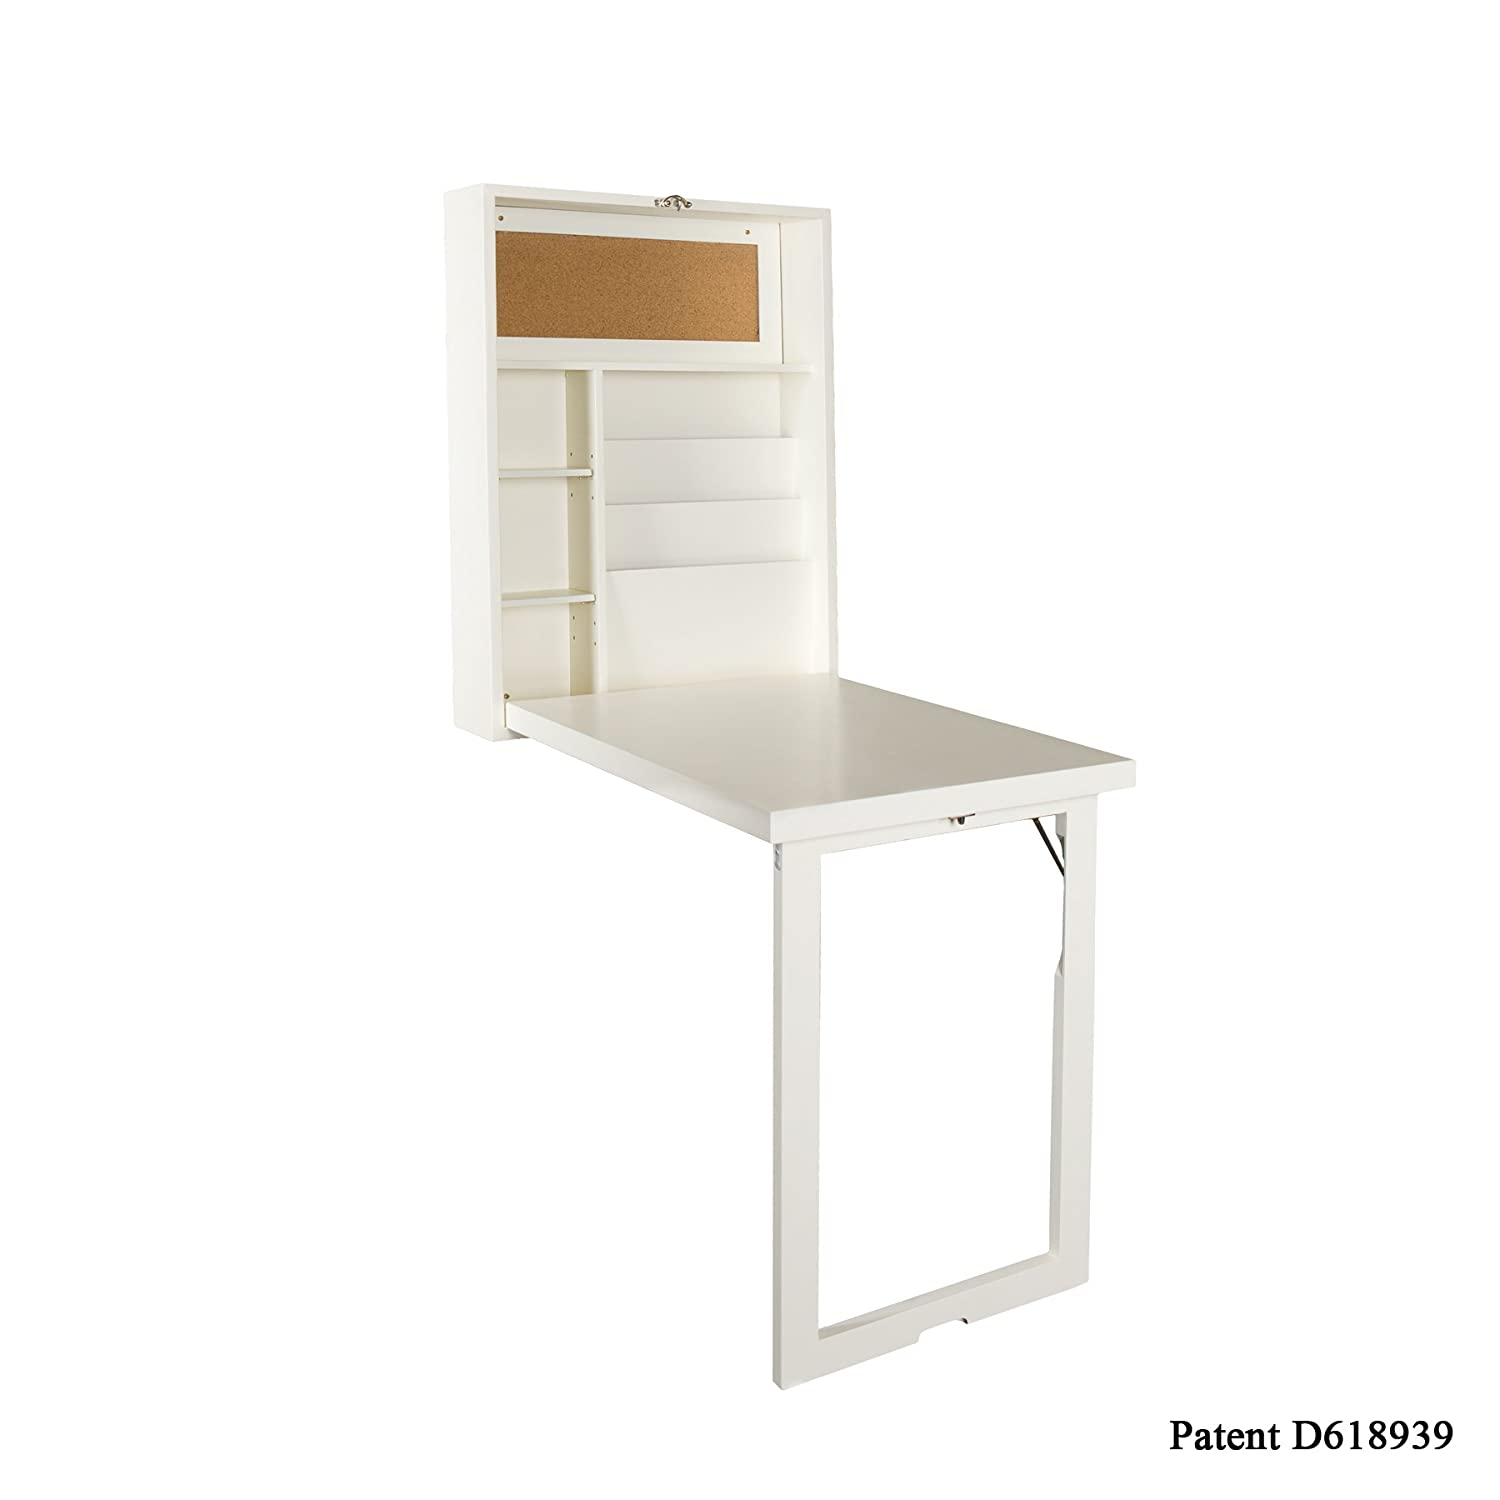 Fold out wall mount convertible desk white kitchen computer table space saver ebay - Folding desks for small spaces concept ...